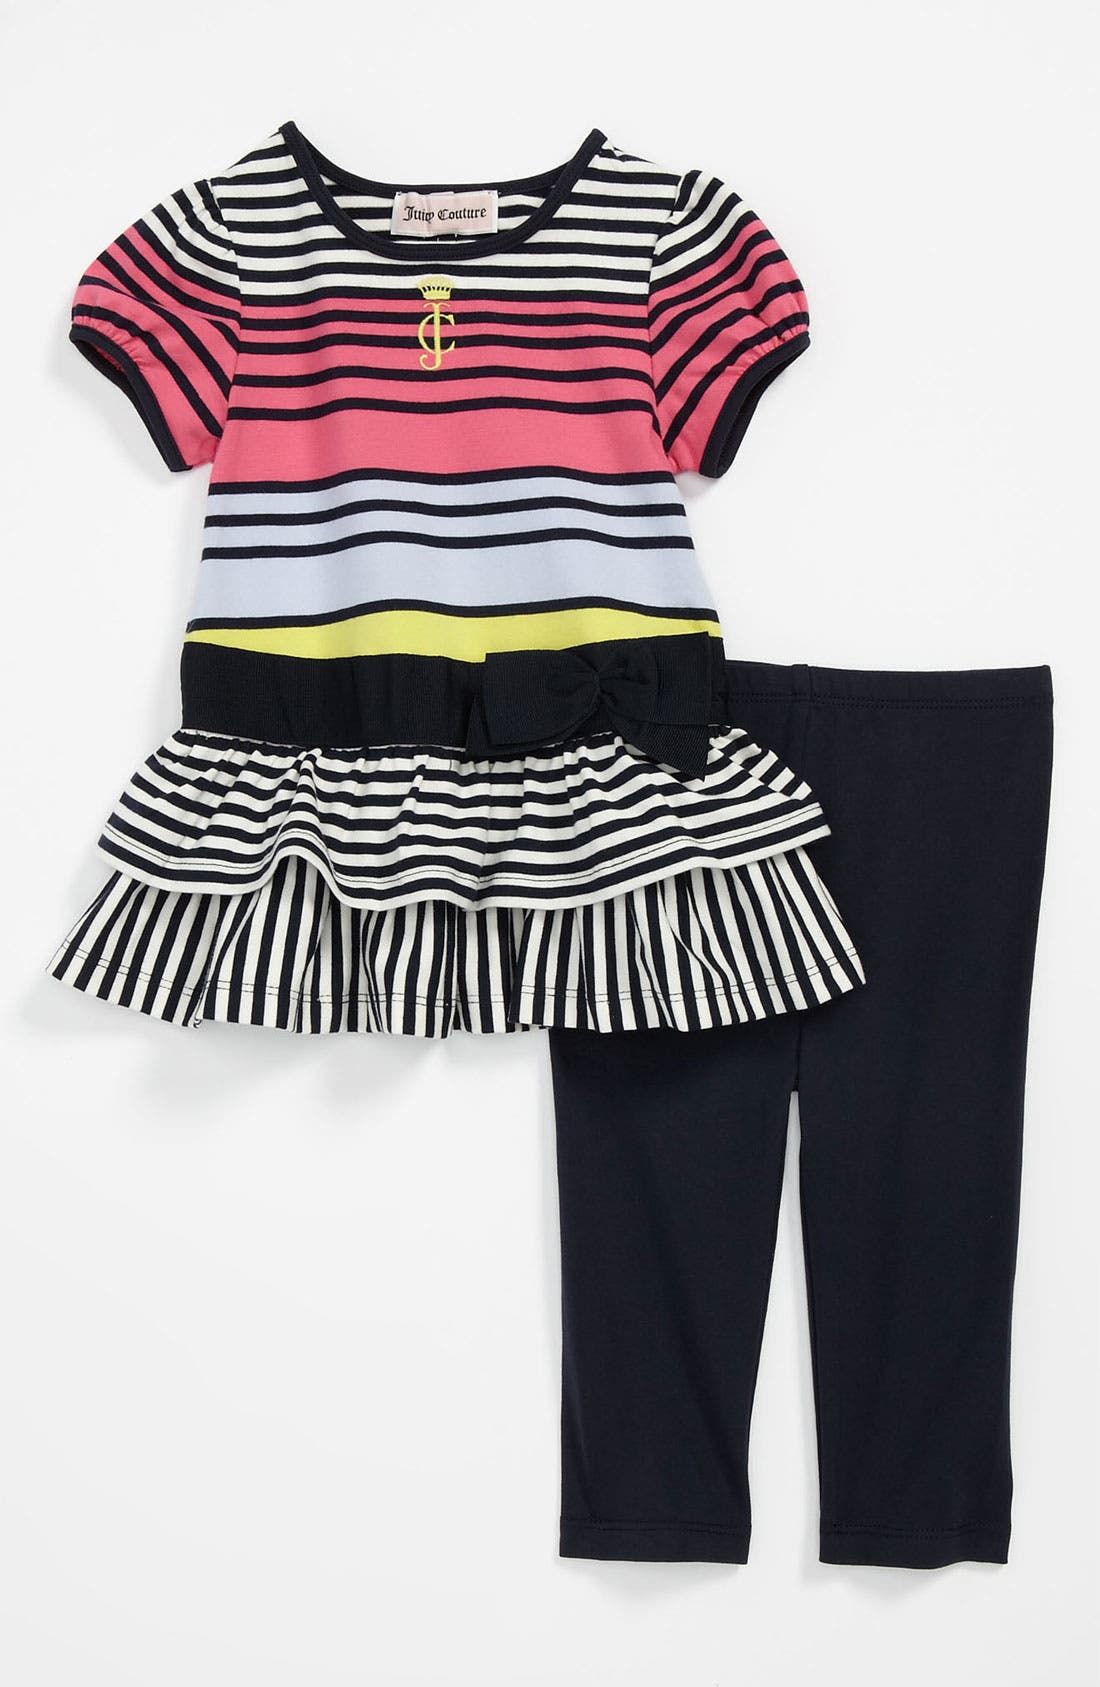 Alternate Image 1 Selected - Juicy Couture Stripe Tunic & Leggings (Infant)